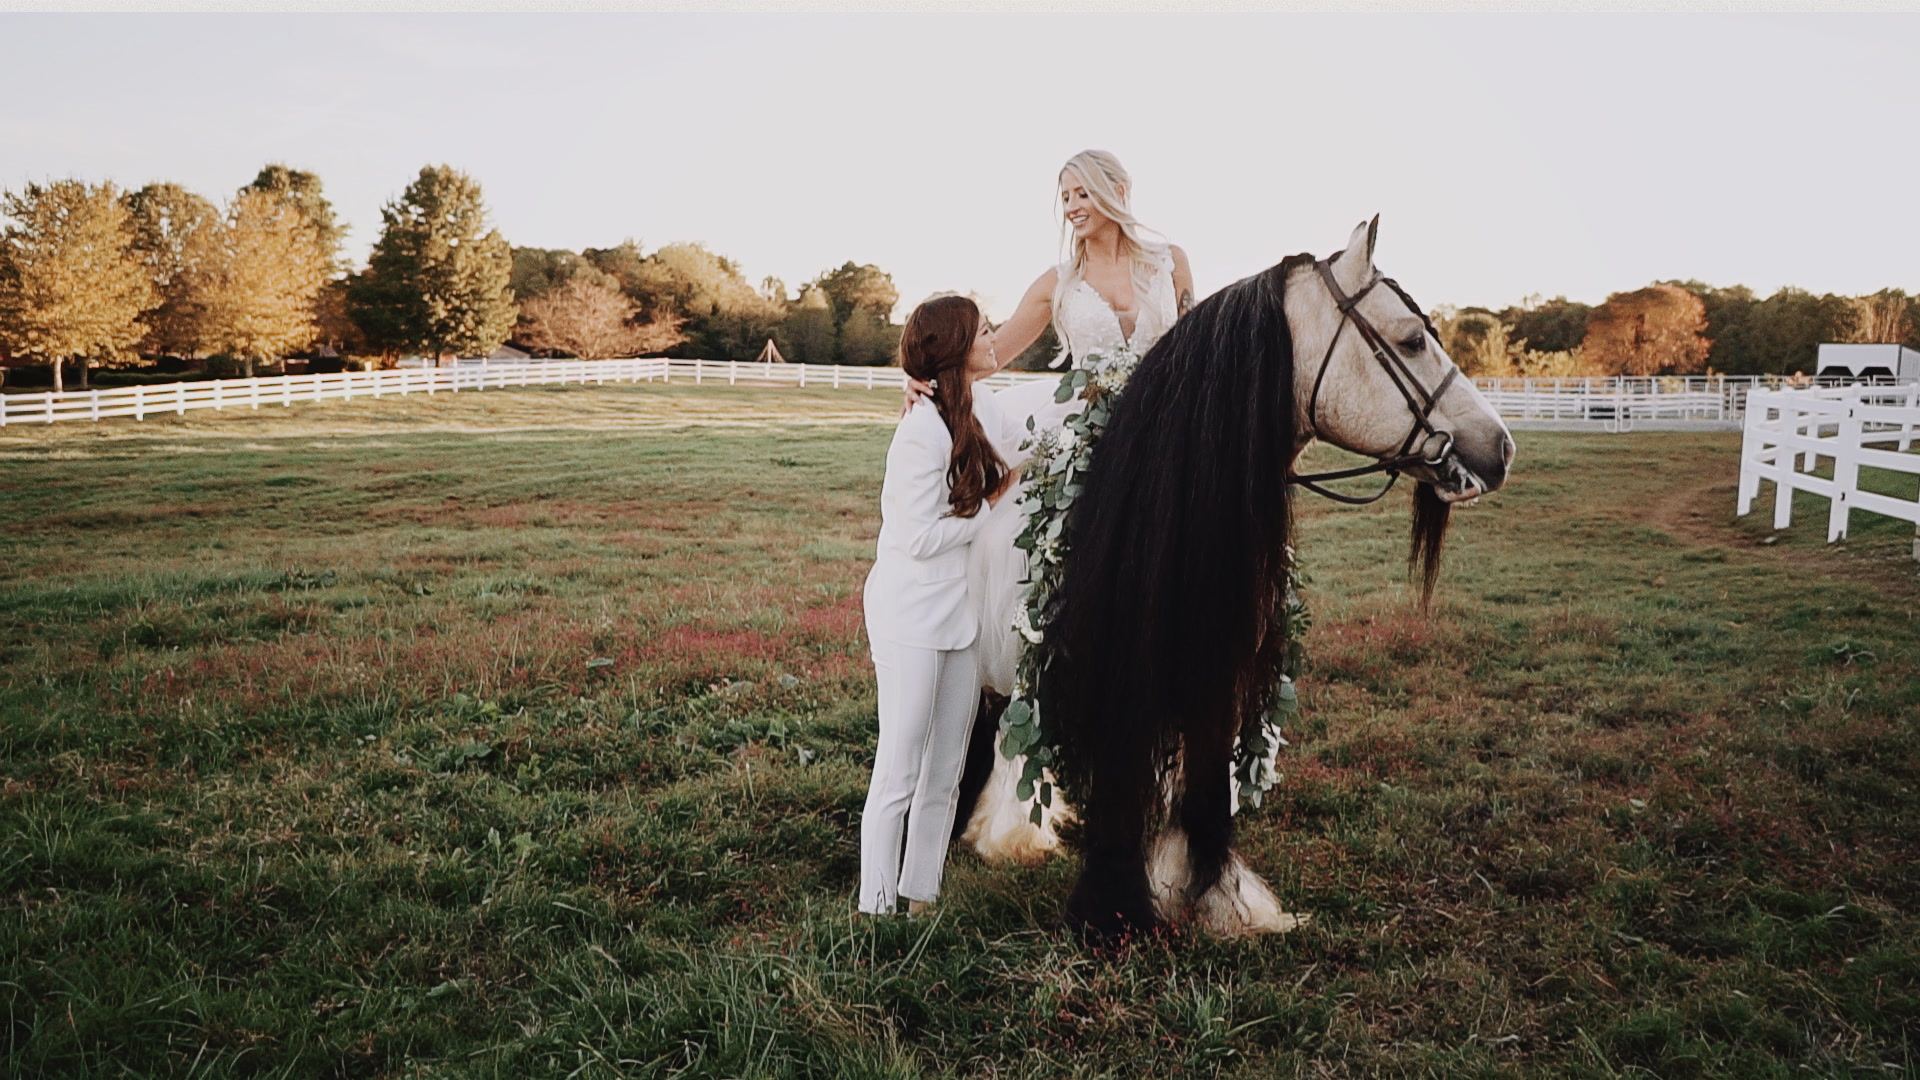 Ali + Anneliese | Nashville, Tennessee | Private Farm